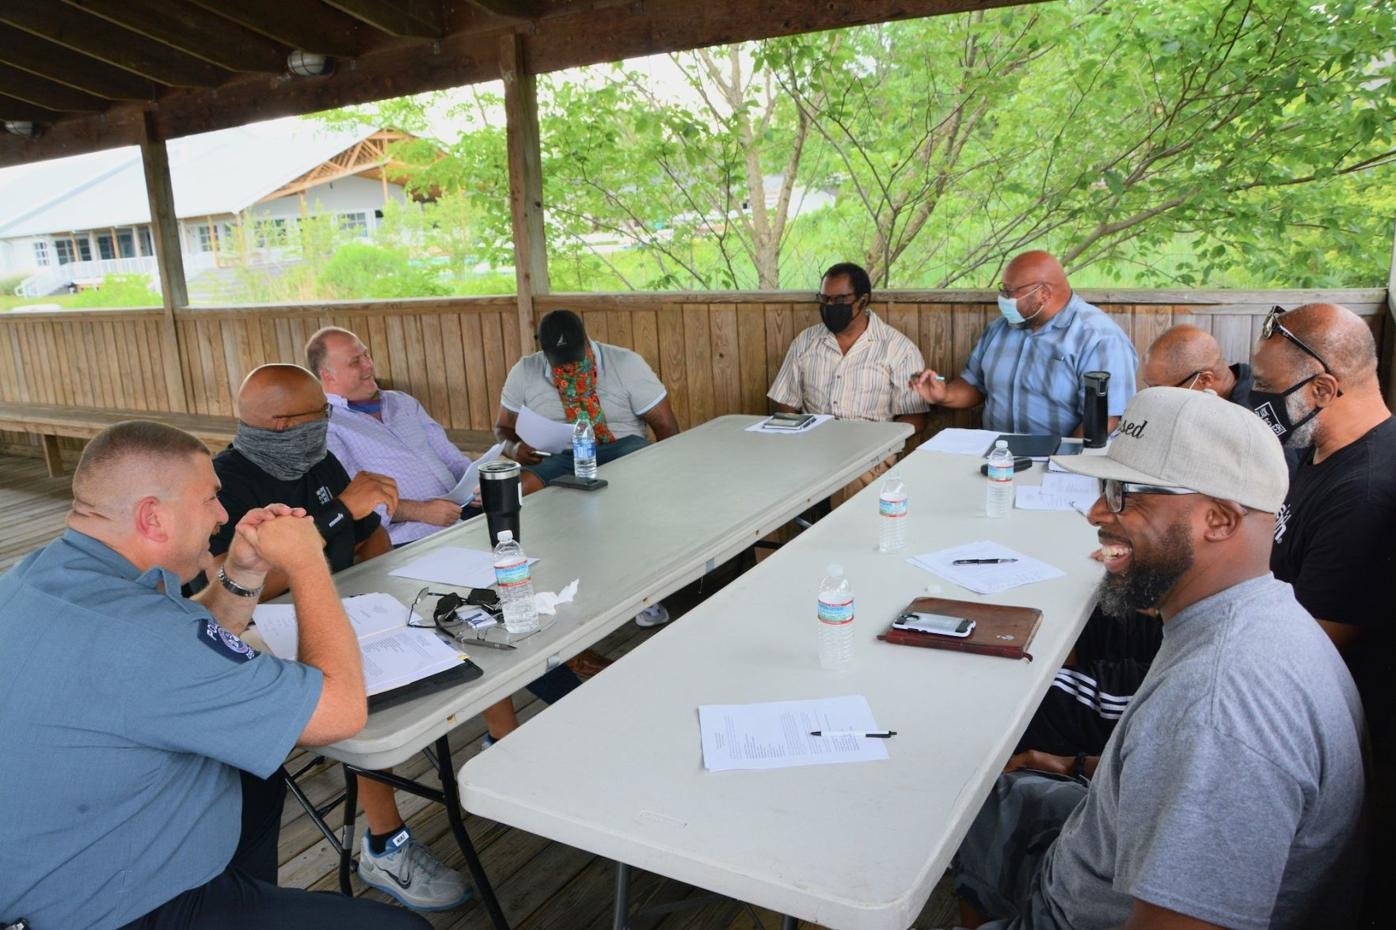 Police, black community talk about racism